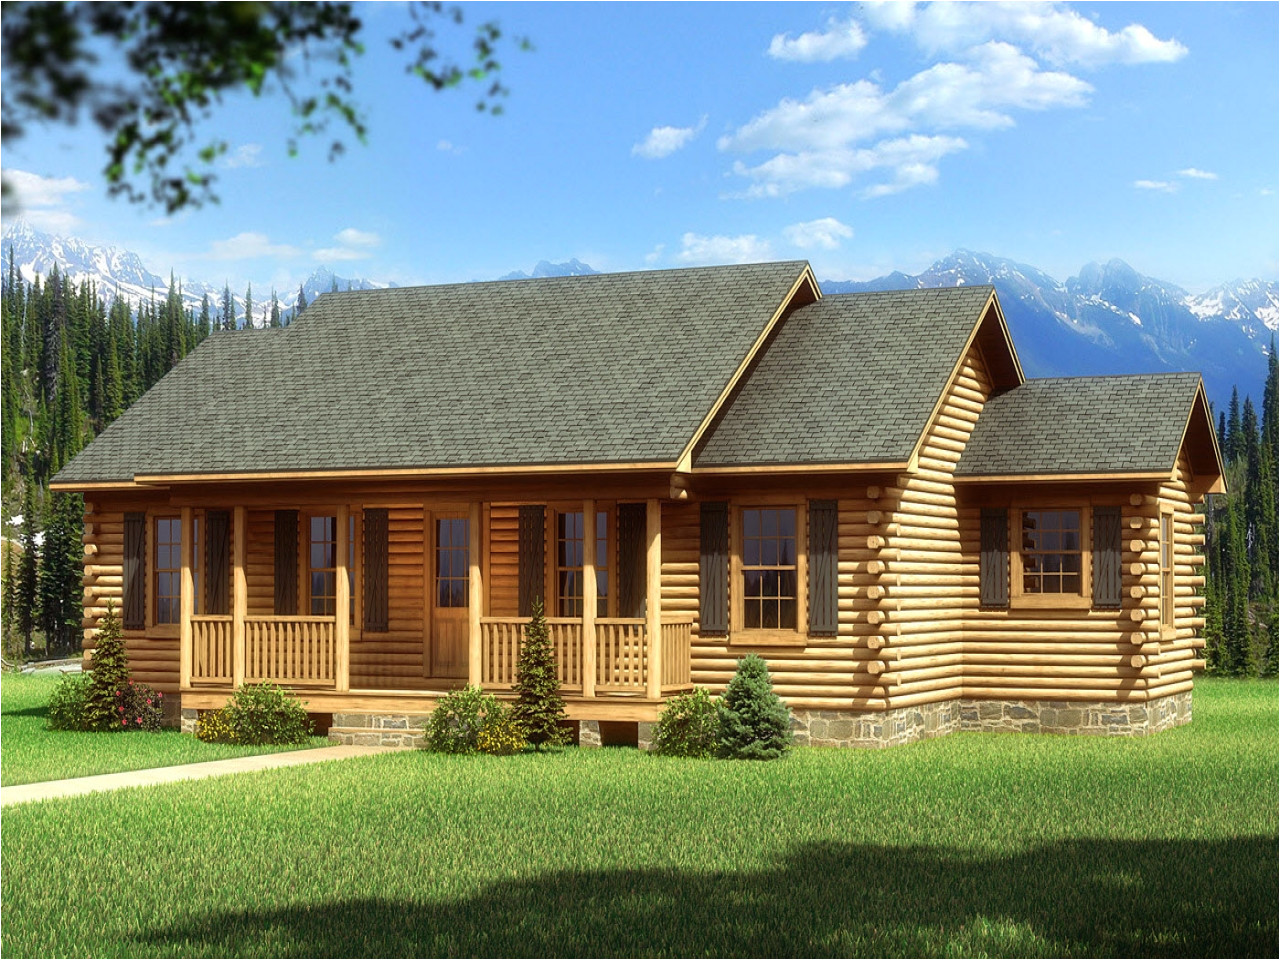 d1f1cf09d5a61419 single story log cabin homes plans single story cabin plans mountain